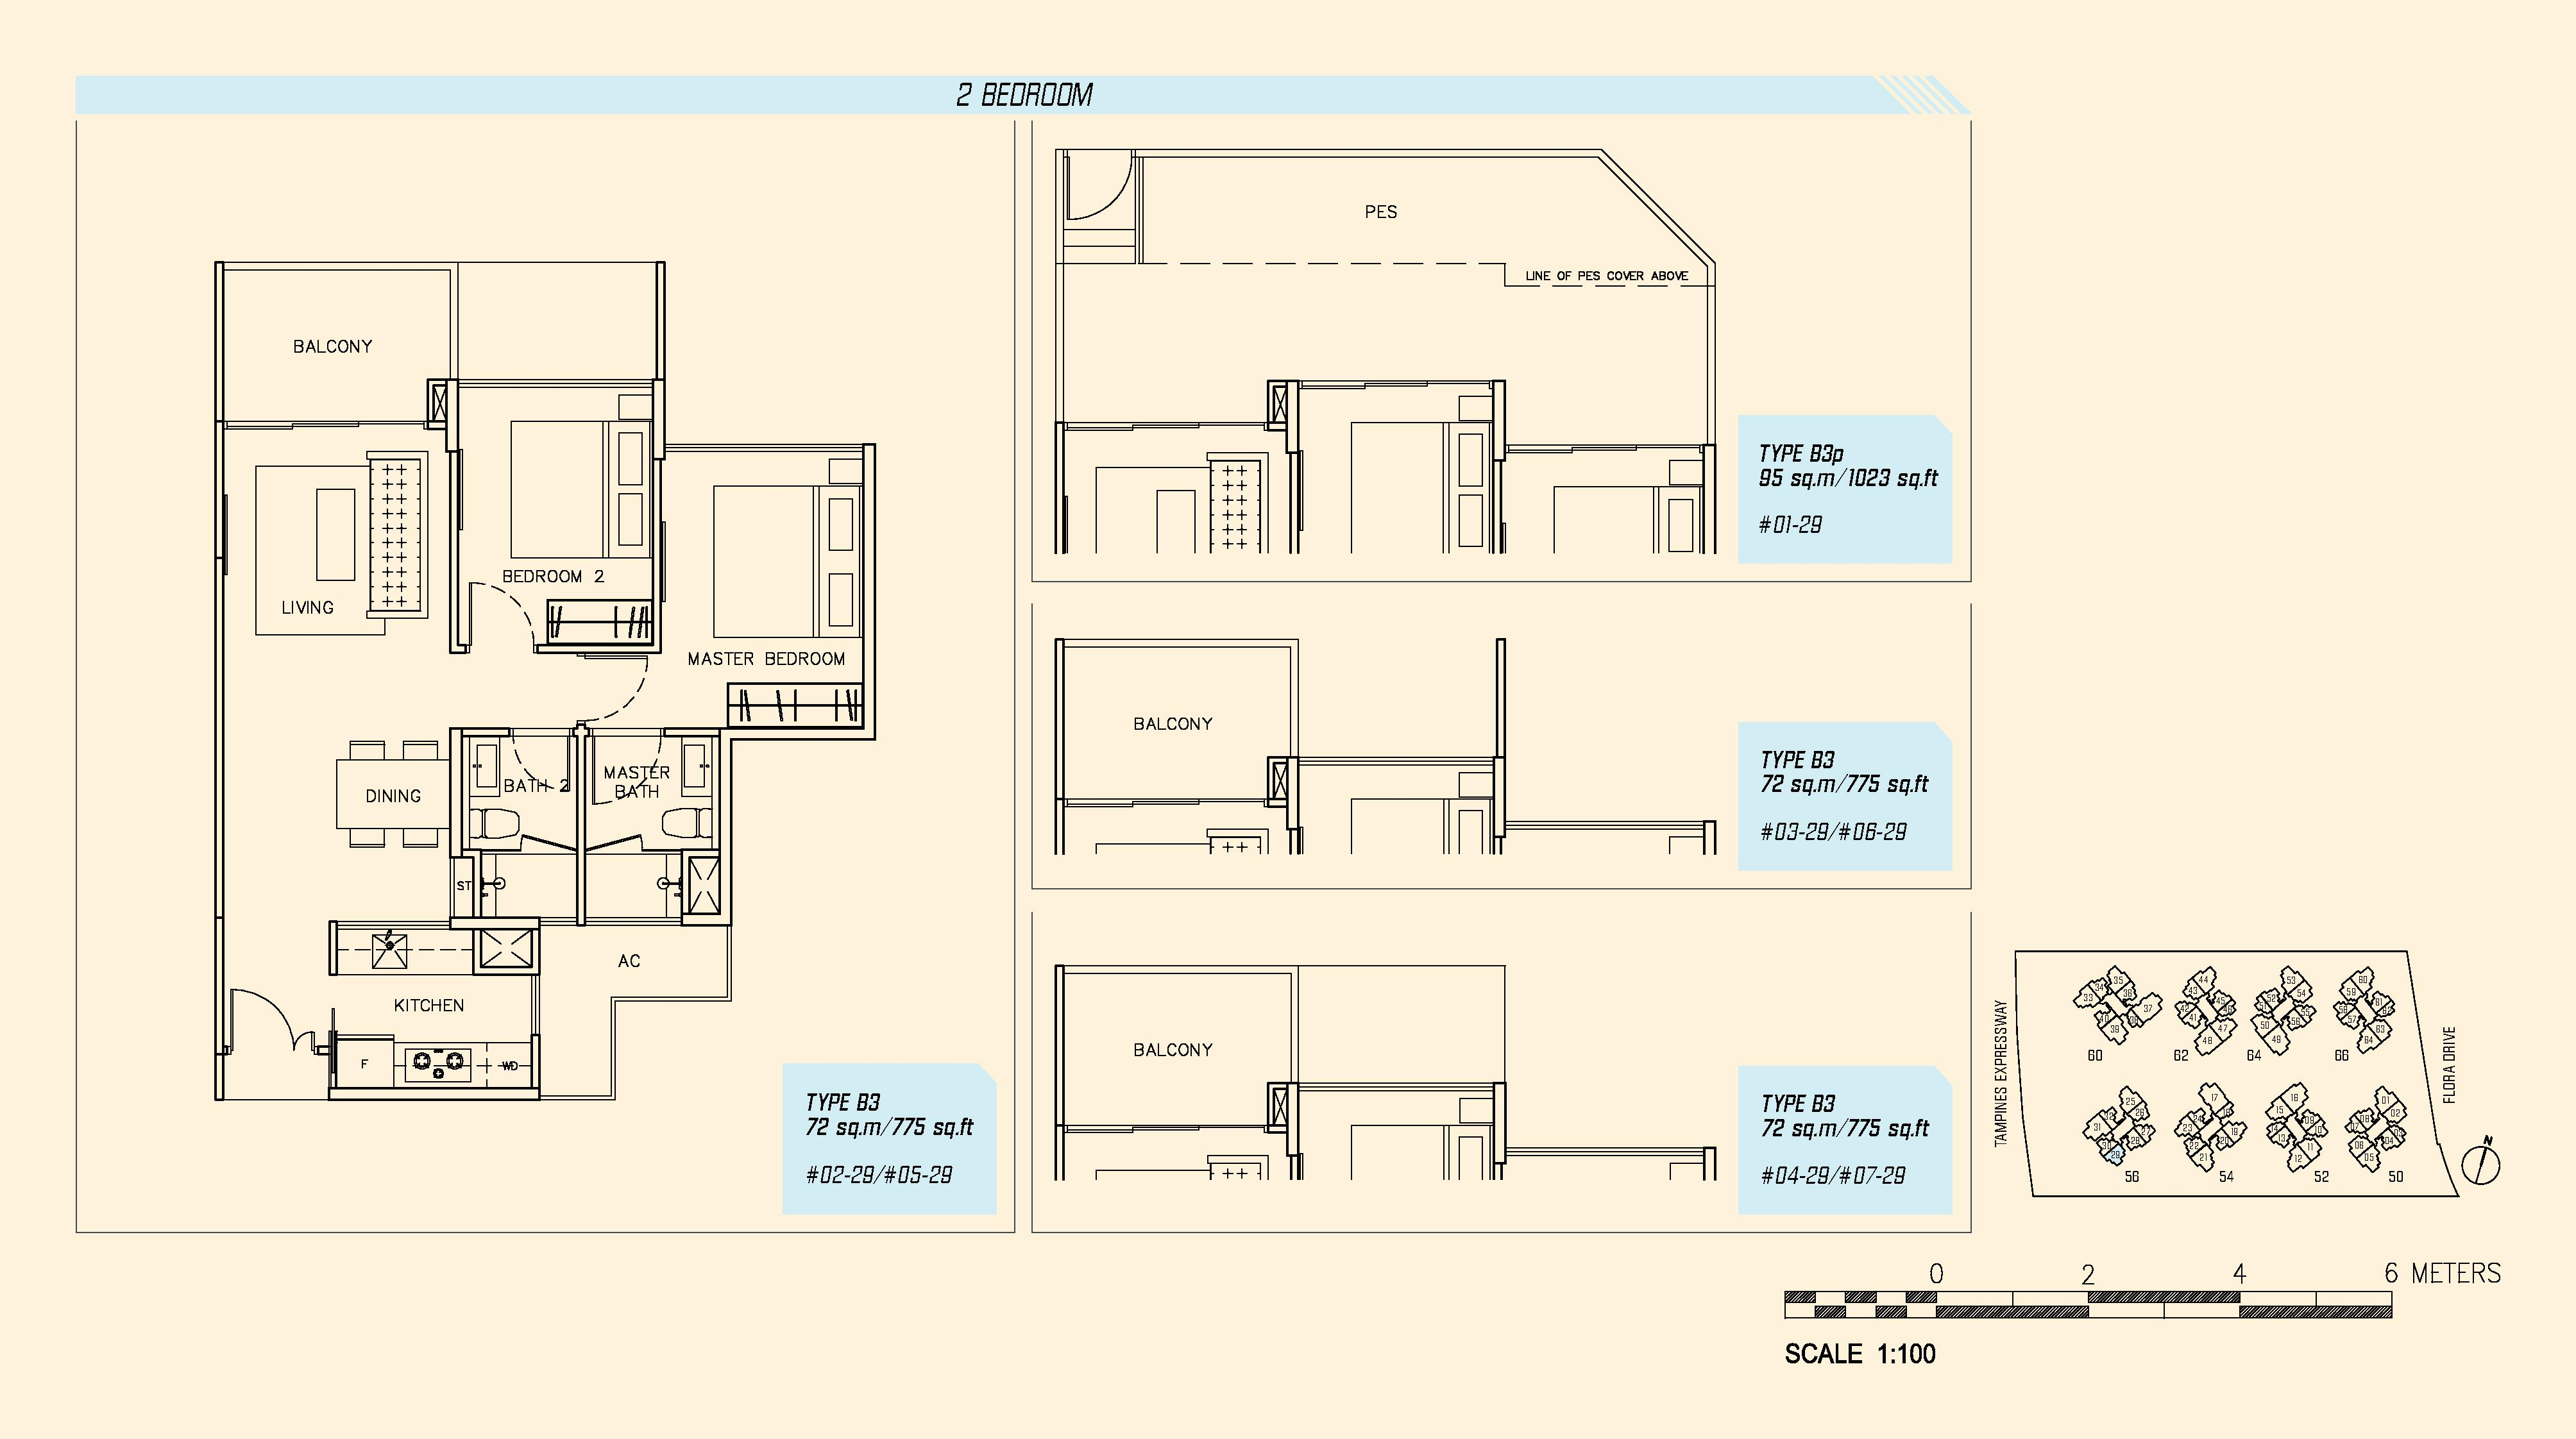 Parc Olympia 2 Bedroom Floor Plans Type B3 and B3p